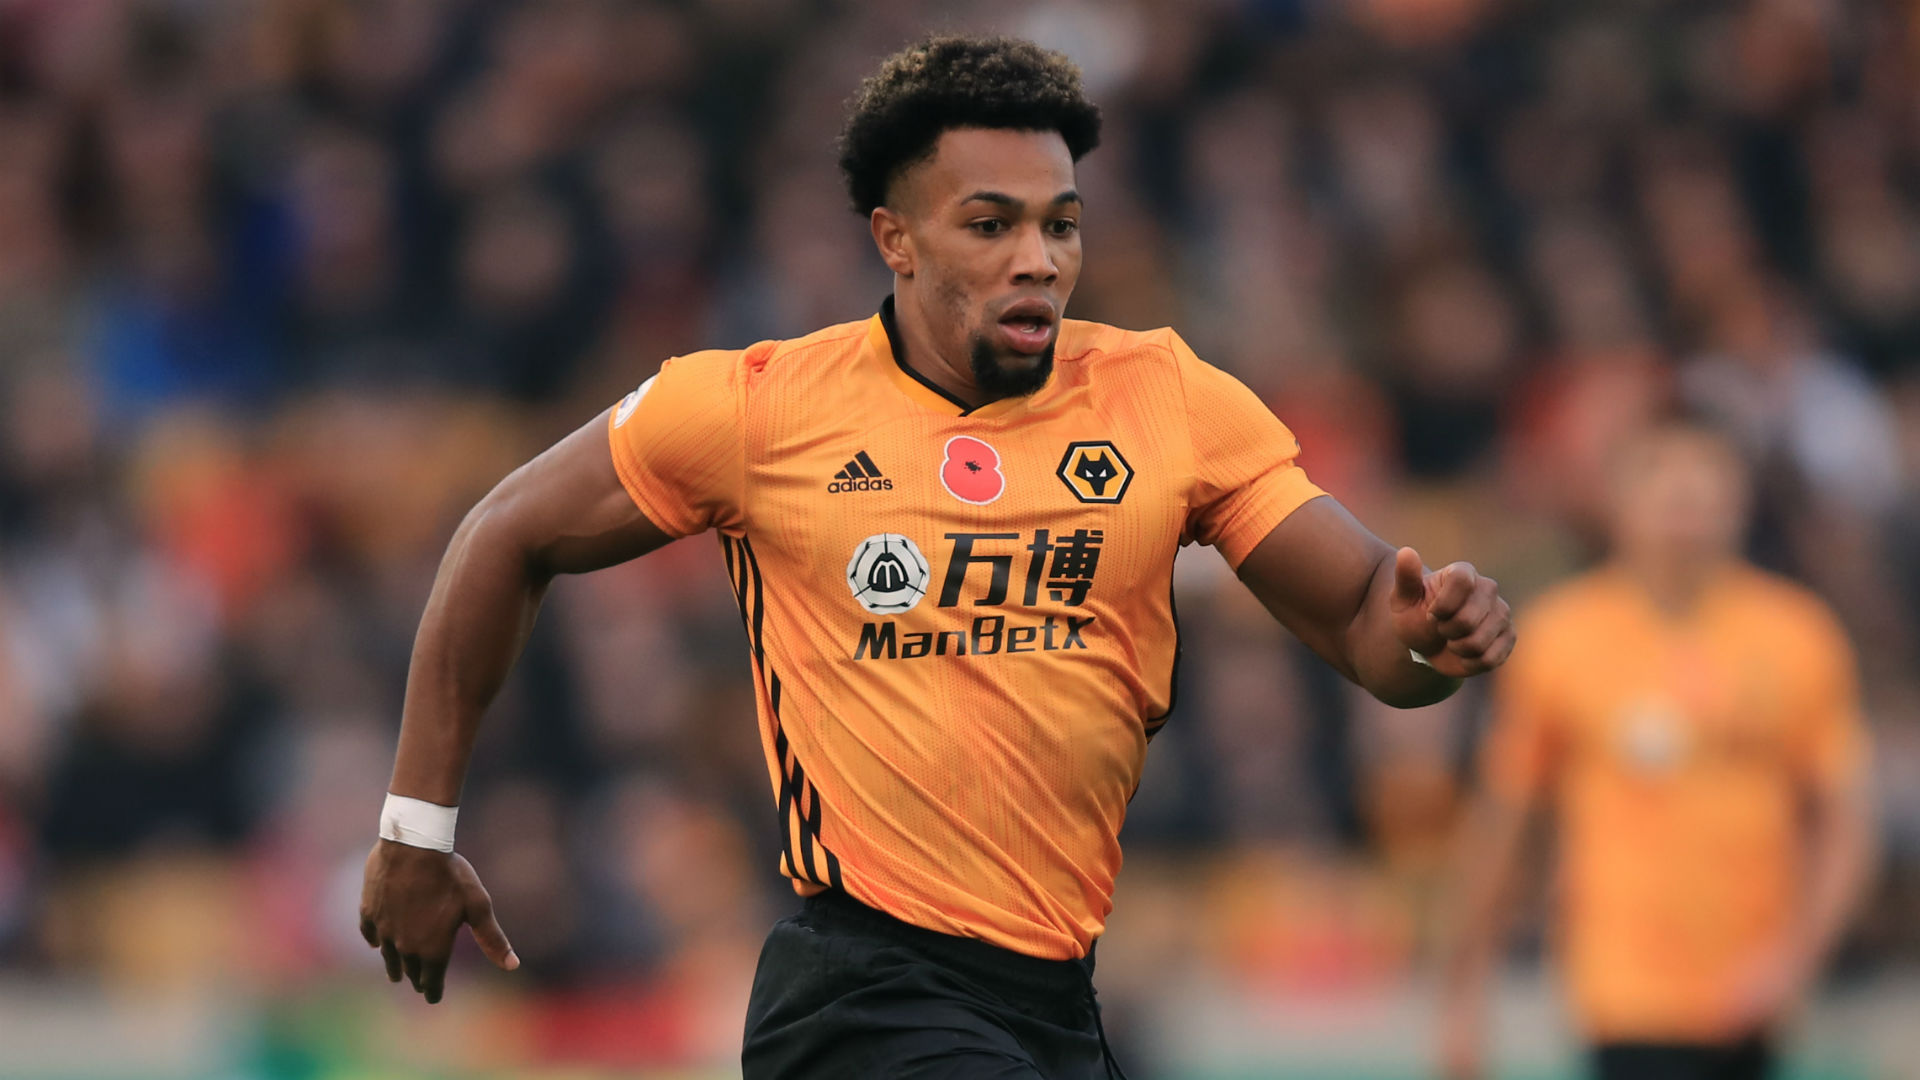 Wolves winger Traore can be 'almost unstoppable' and might be fastest ever footballer, says Gil